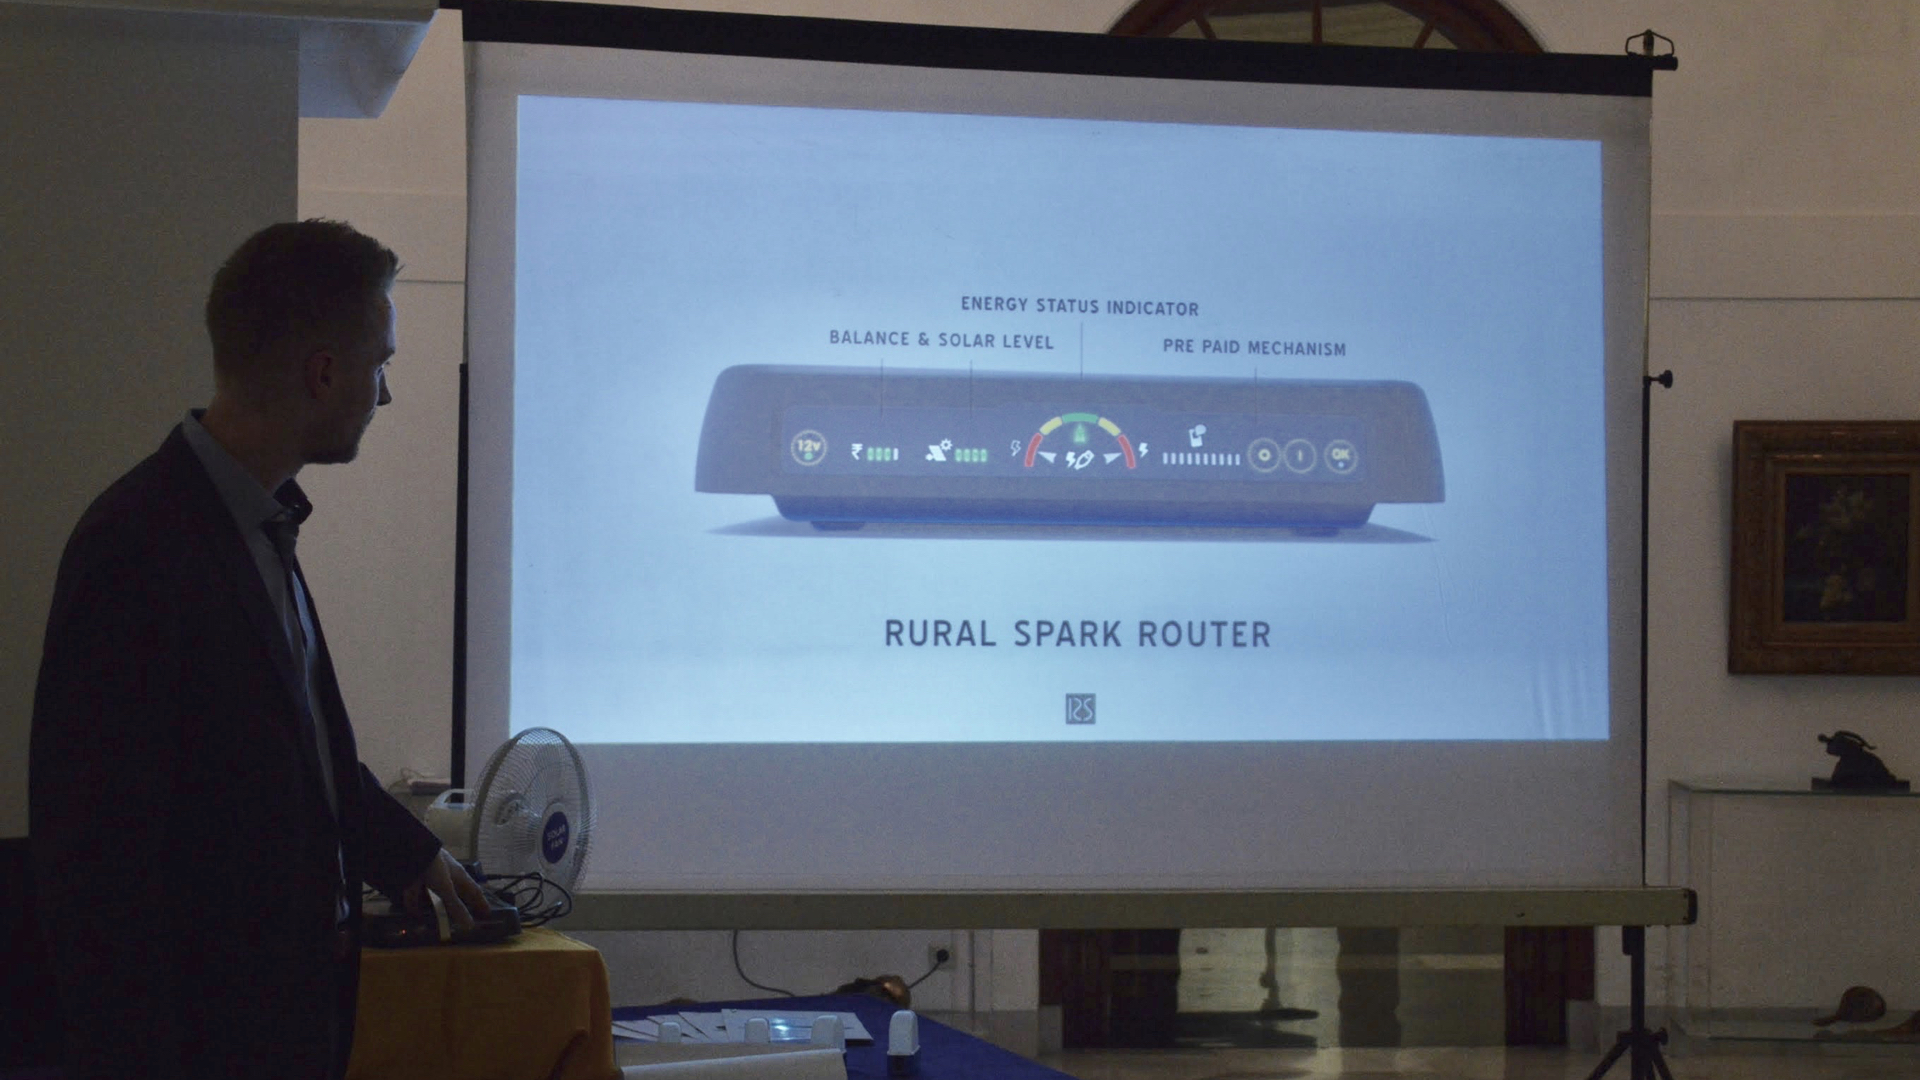 The Rural Spark Router is at the heart of the Rural Spark Energy kit. It contains a prepaid module, can be charged by multiple sources including the grid, and can charge any 5V and 12V application like mobile phones, lamps, fans and TV.